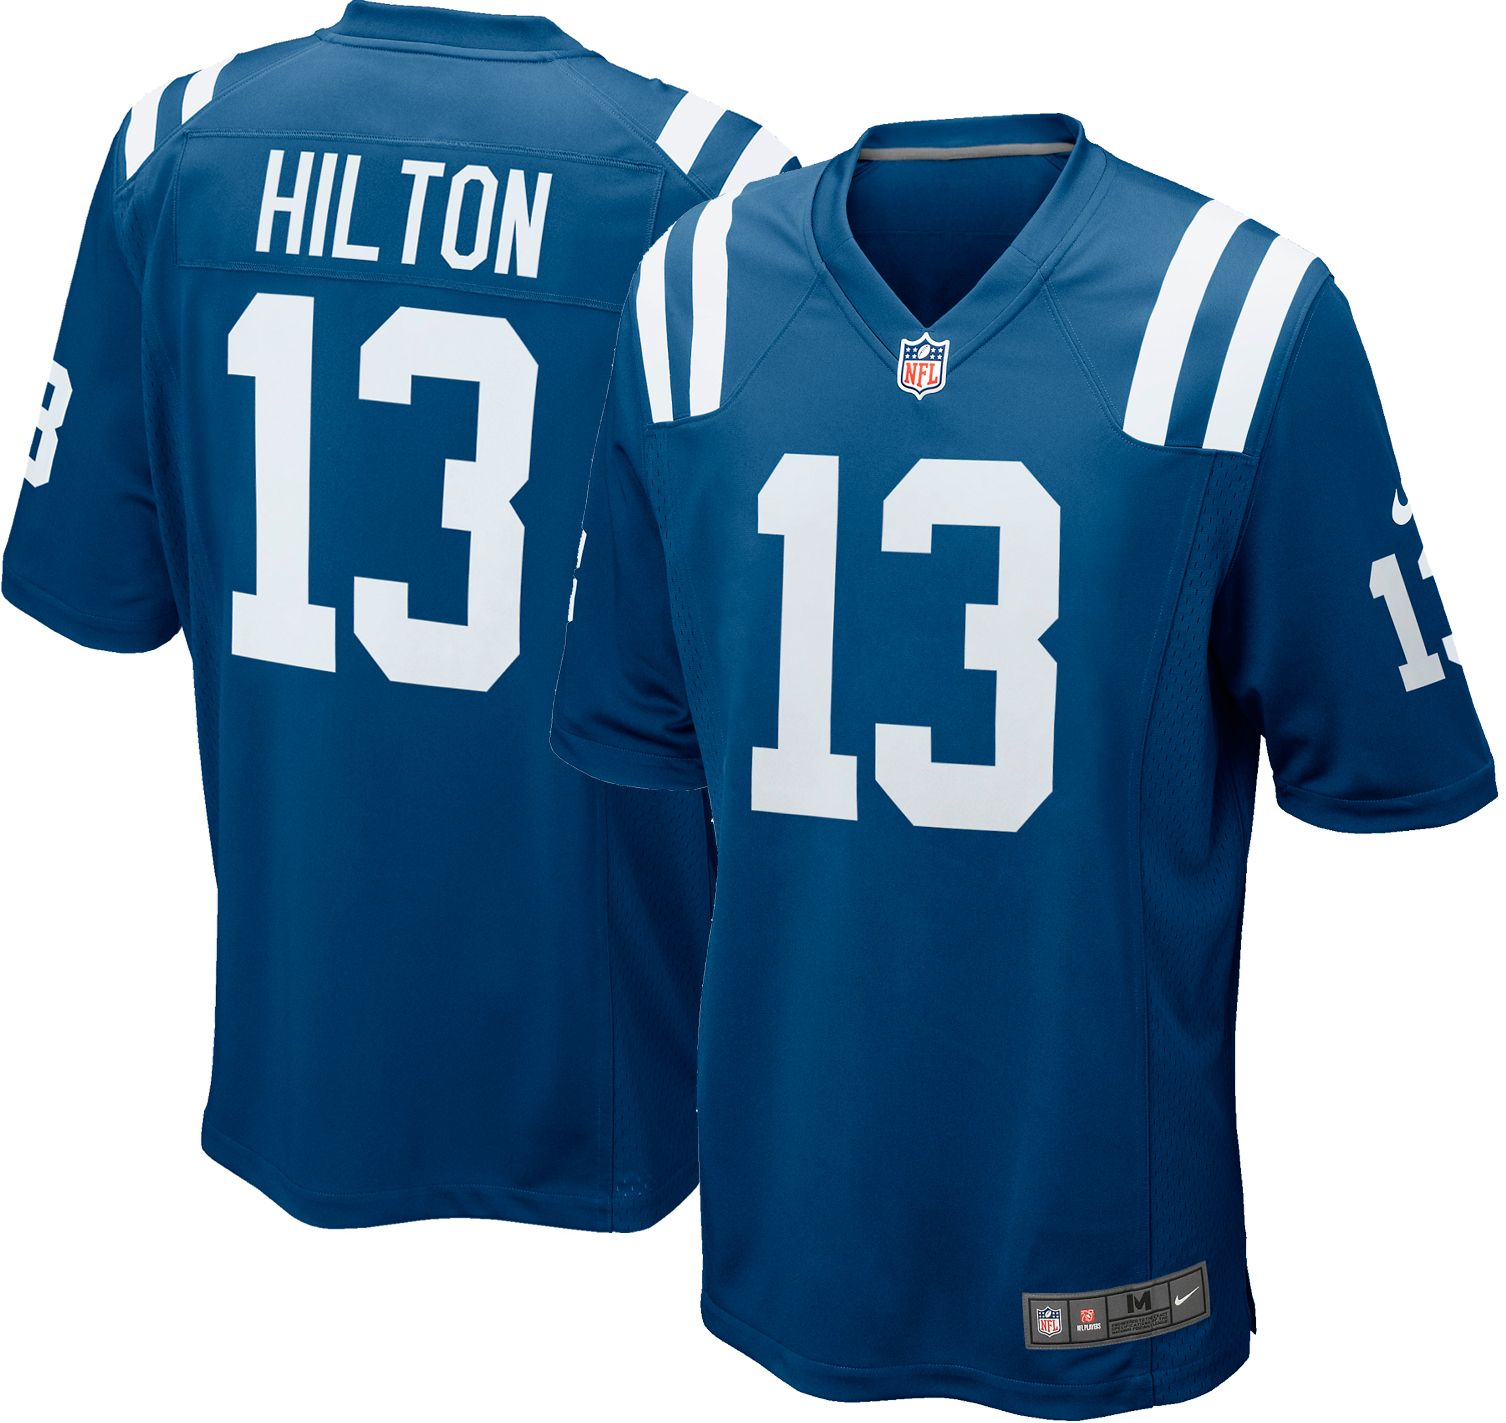 Nike Men s Home Game Jersey Indianapolis Colts T Y Hilton 13